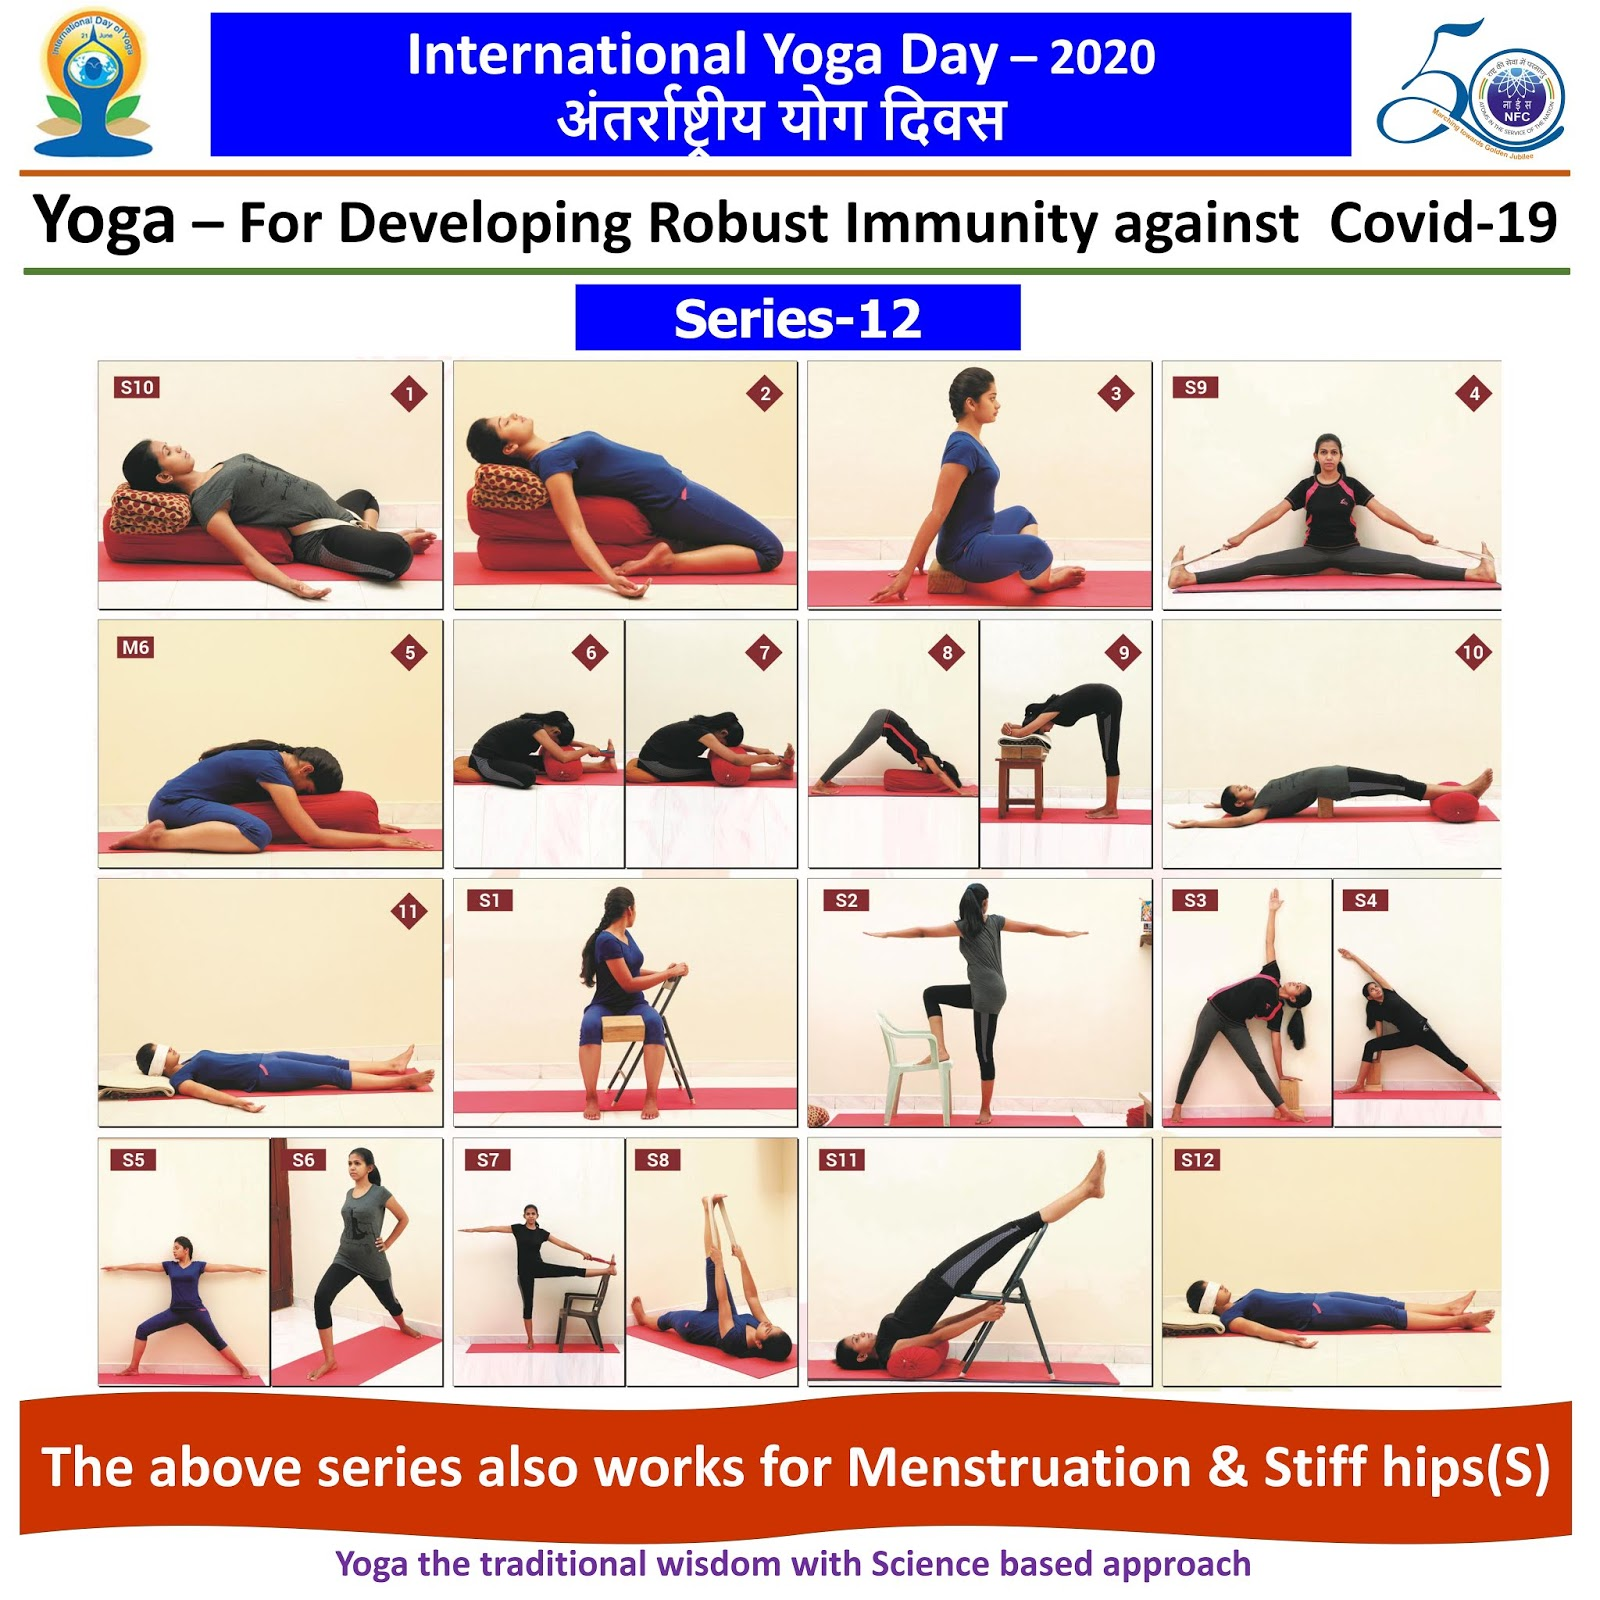 Happy International Yoga Day ... This series also works for Menstruation & Stiff hips(S)  IMAGES, GIF, ANIMATED GIF, WALLPAPER, STICKER FOR WHATSAPP & FACEBOOK